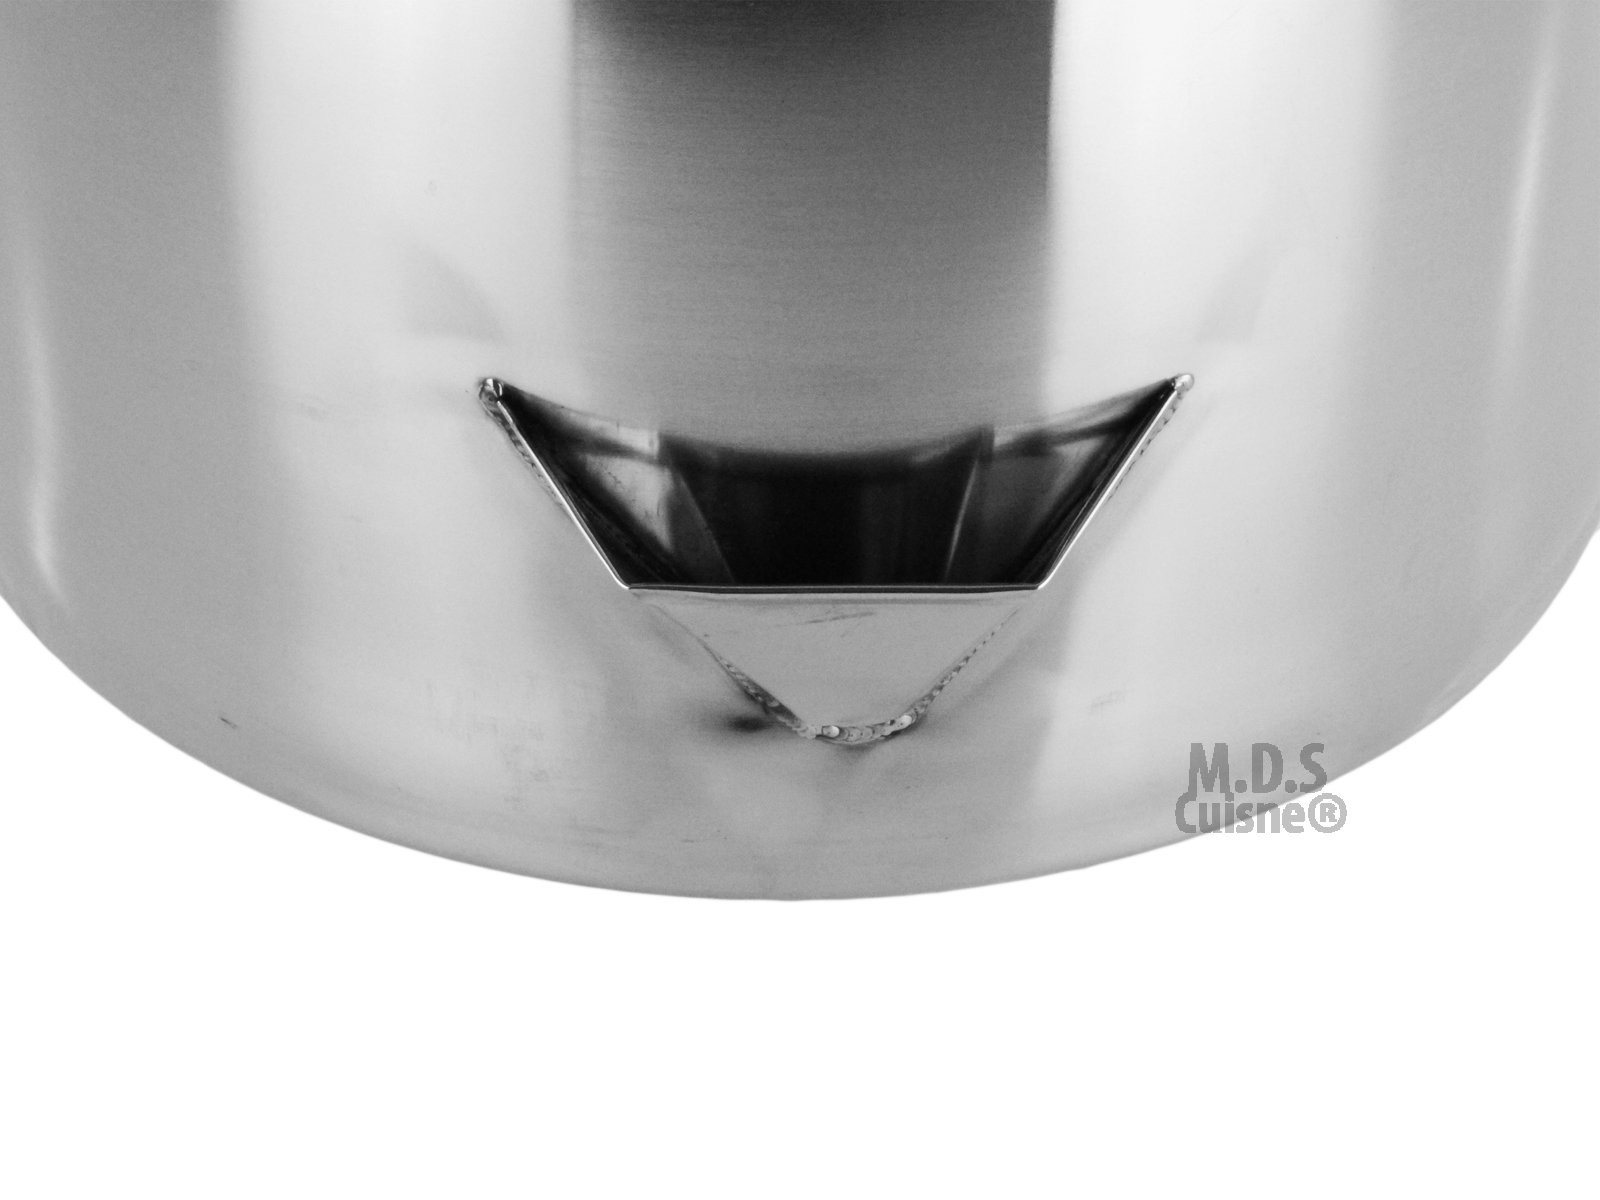 Stock Pot Stainless Steel 52''QT Lid Steamer Brew Vaporera Divider Tamales New by M.D.S Cuisine Cookwares (Image #4)